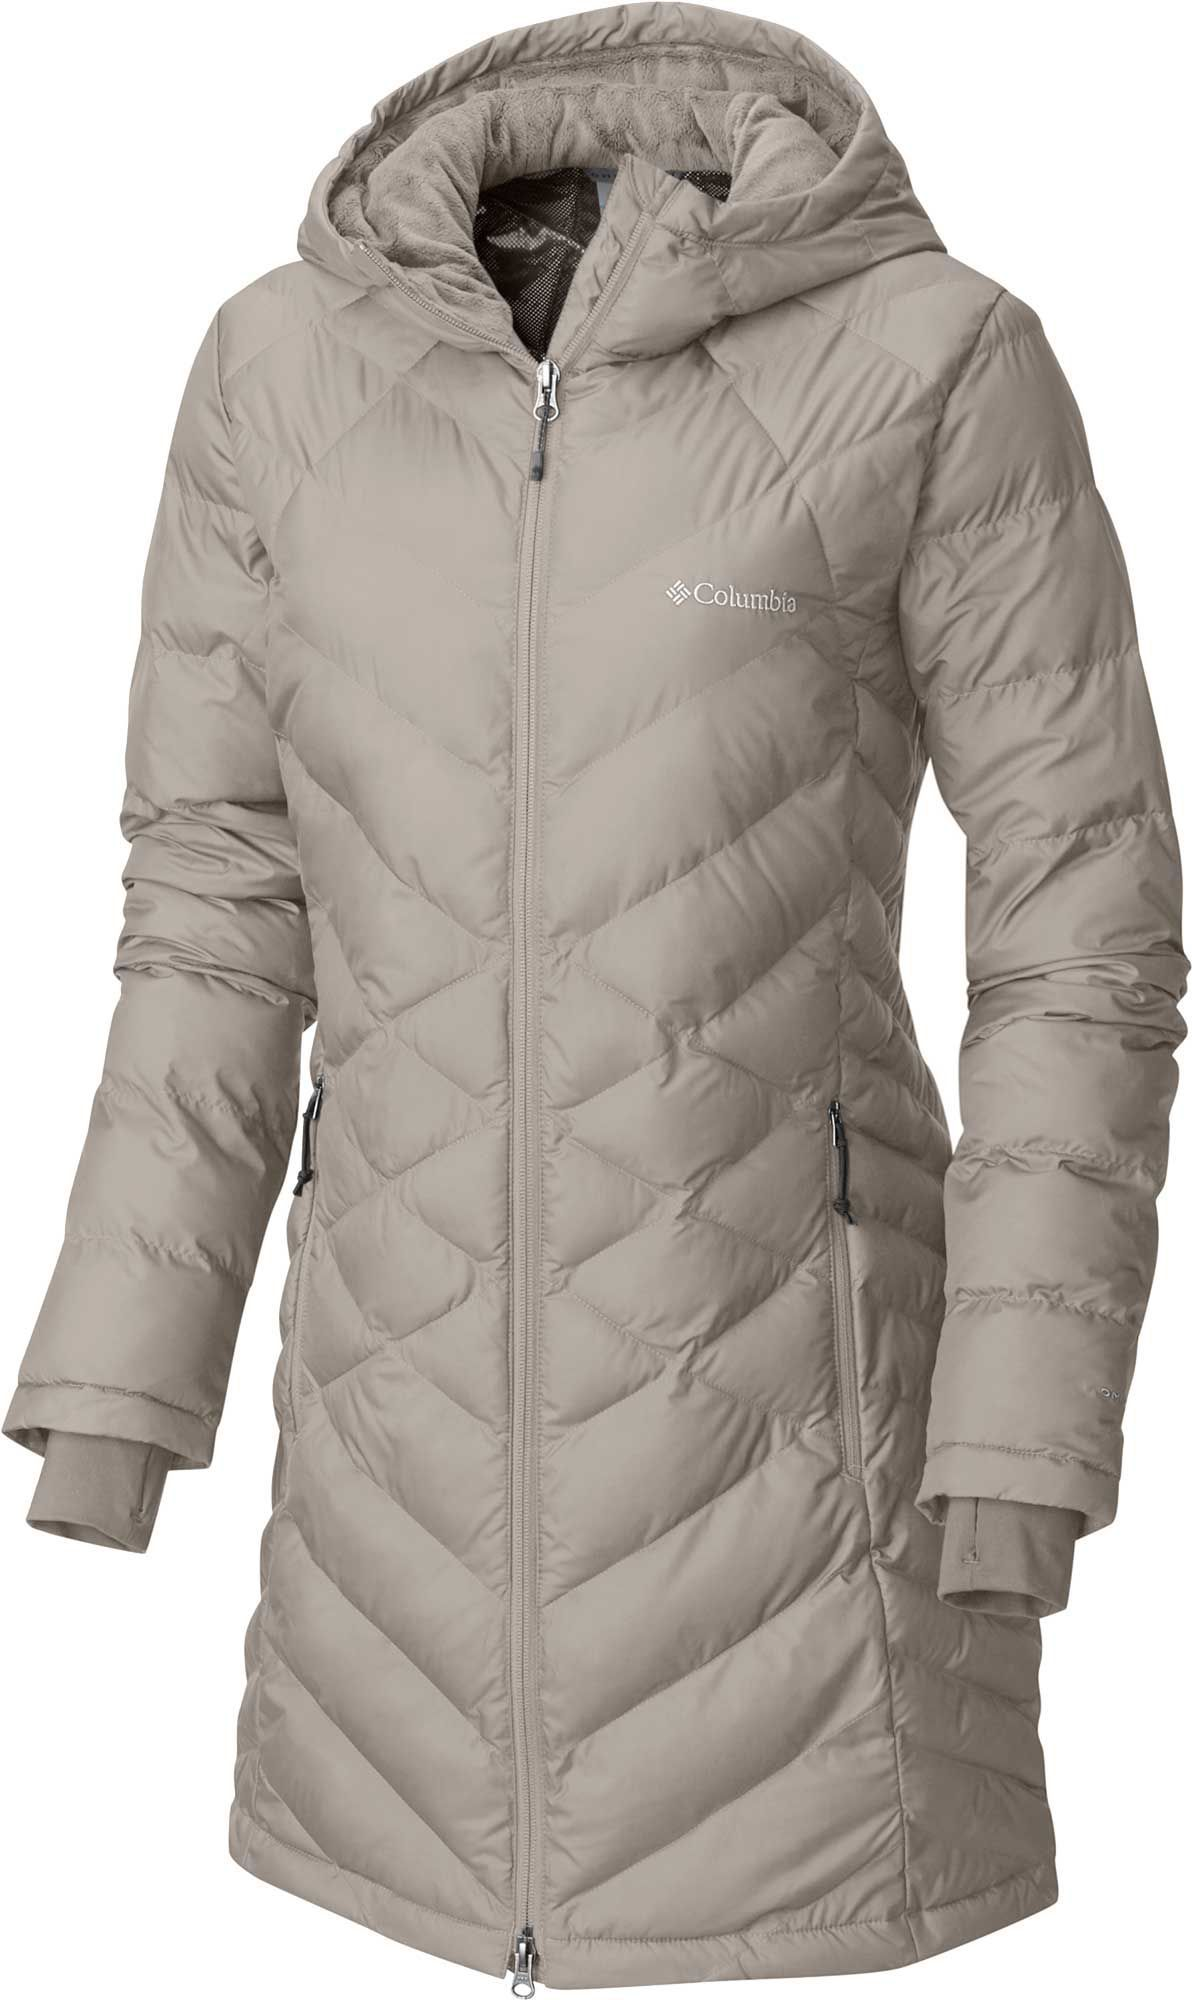 Compare Women's Best Winter Jackets and Coats: Columbia vs